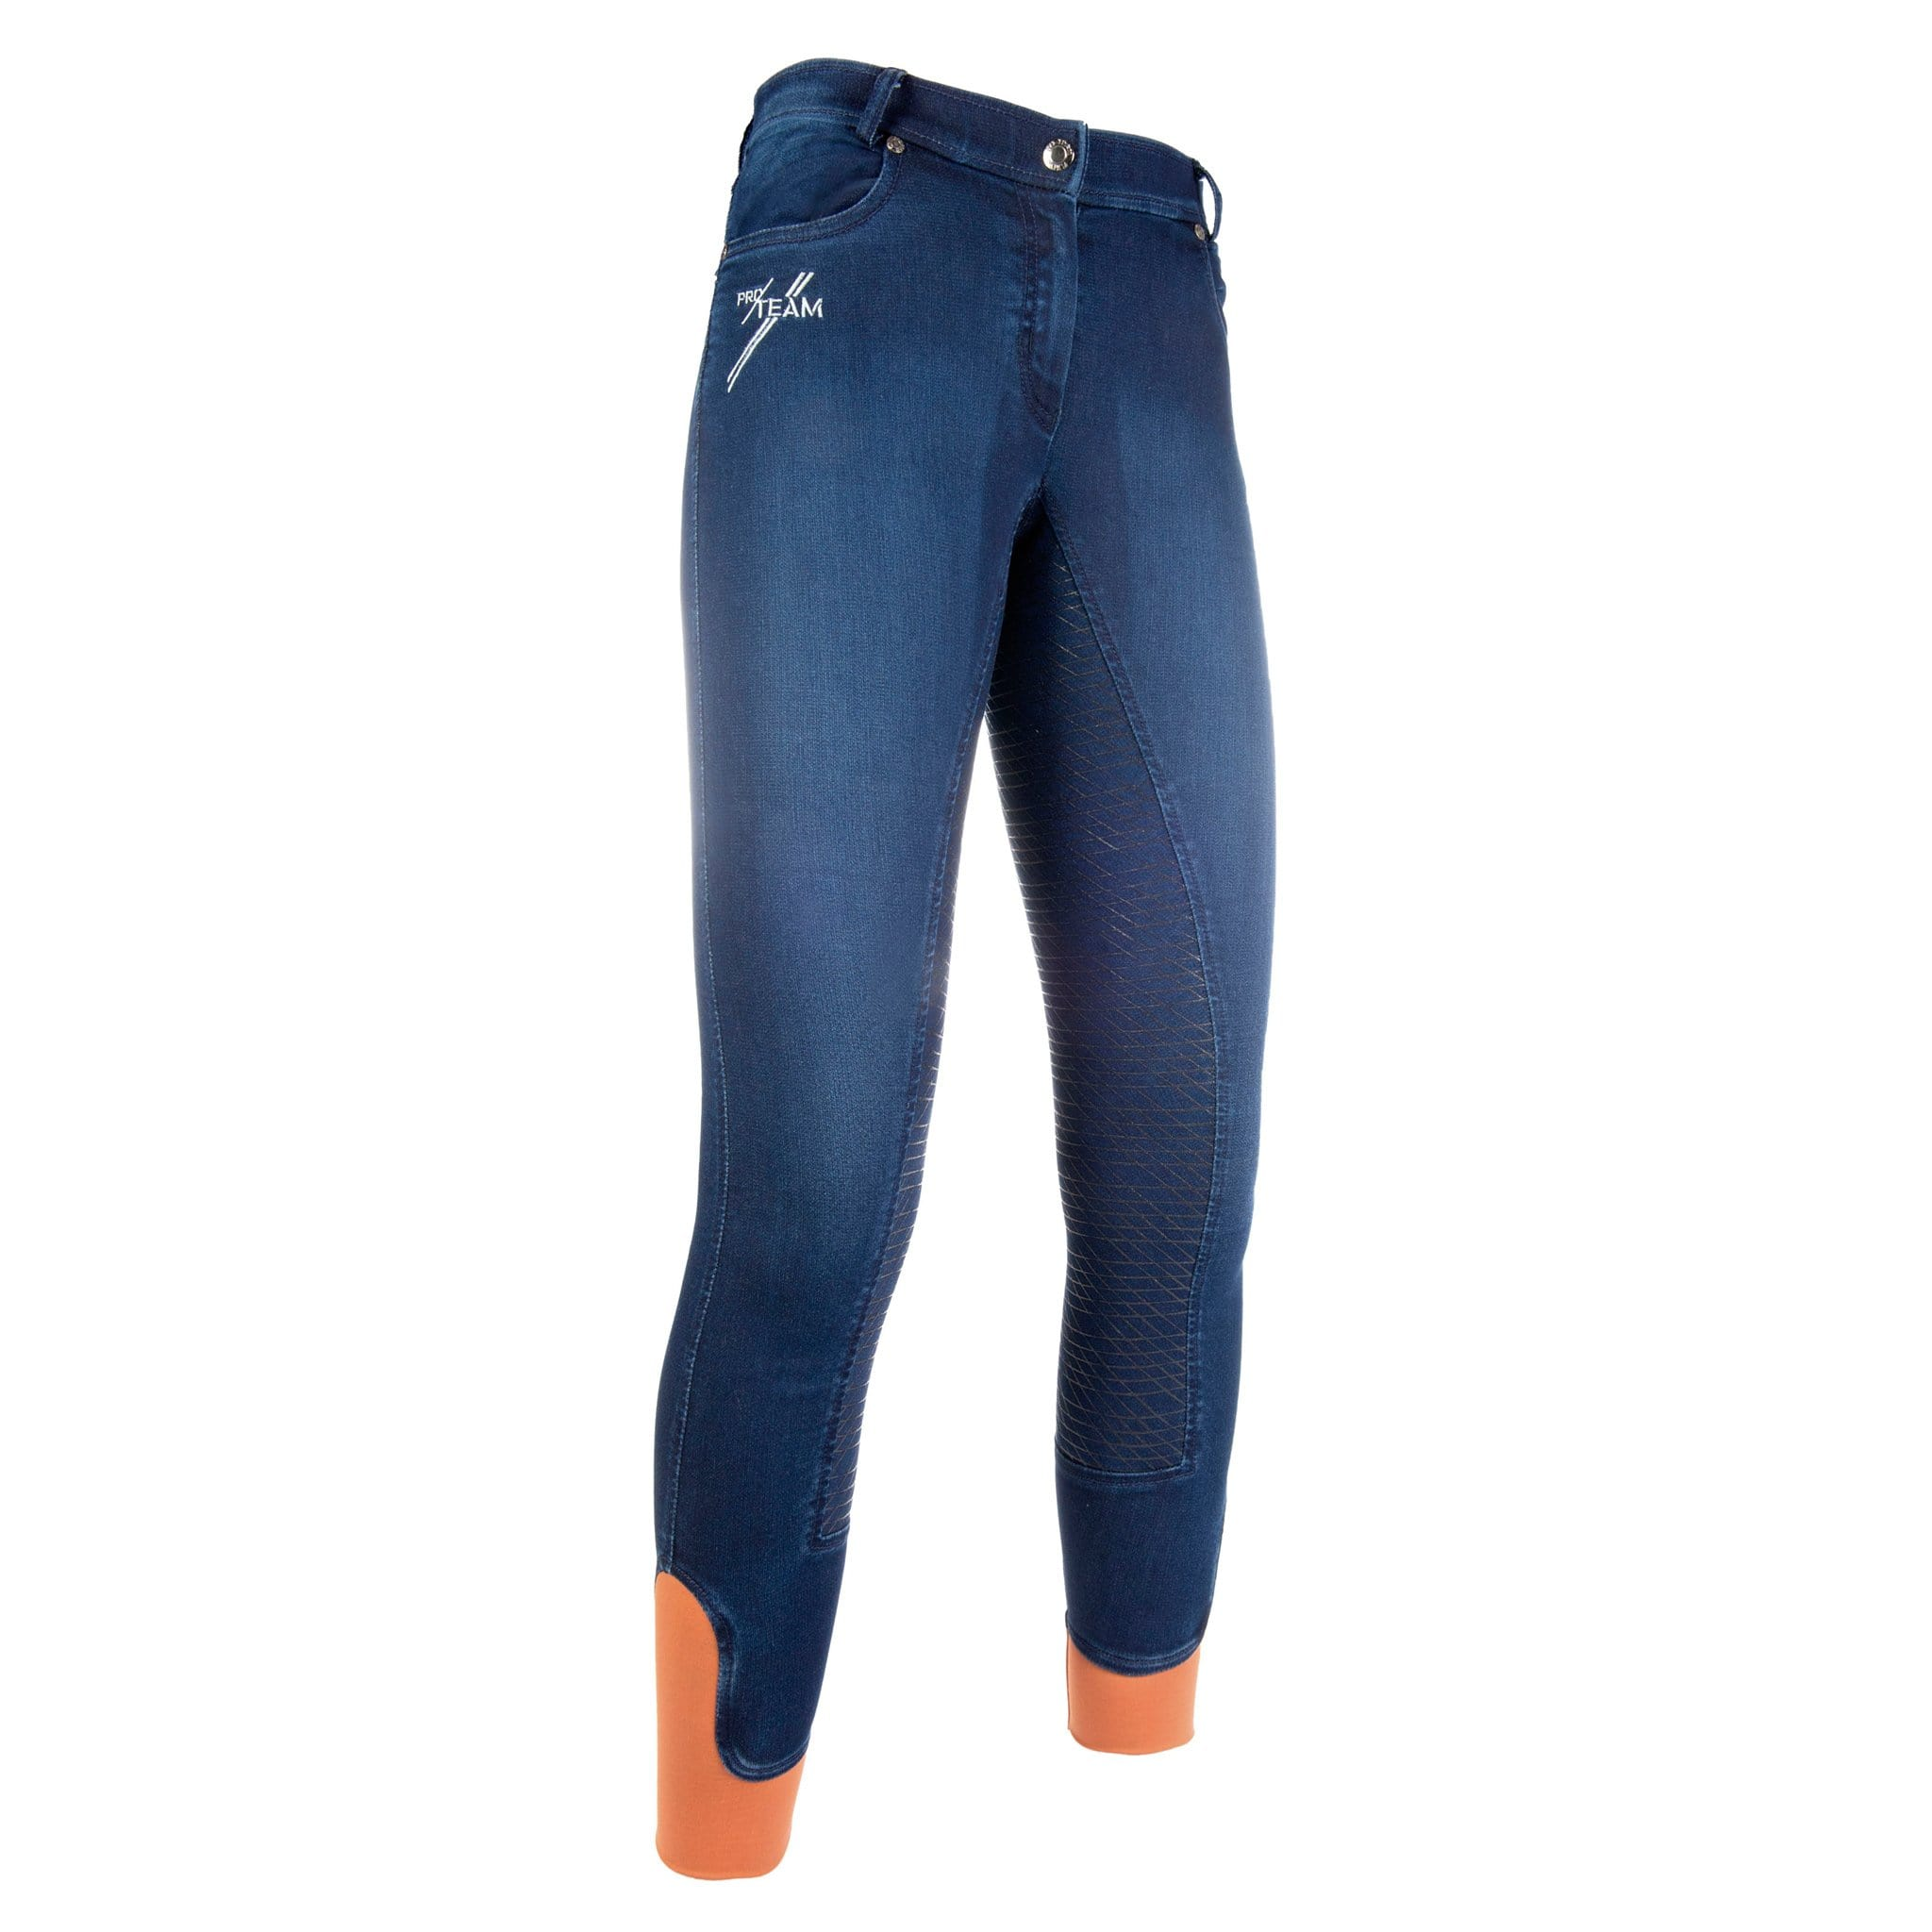 HKM Pro Team Hickstead Silicone Full Seat Riding Jeggings Studio Front View 10736/6100